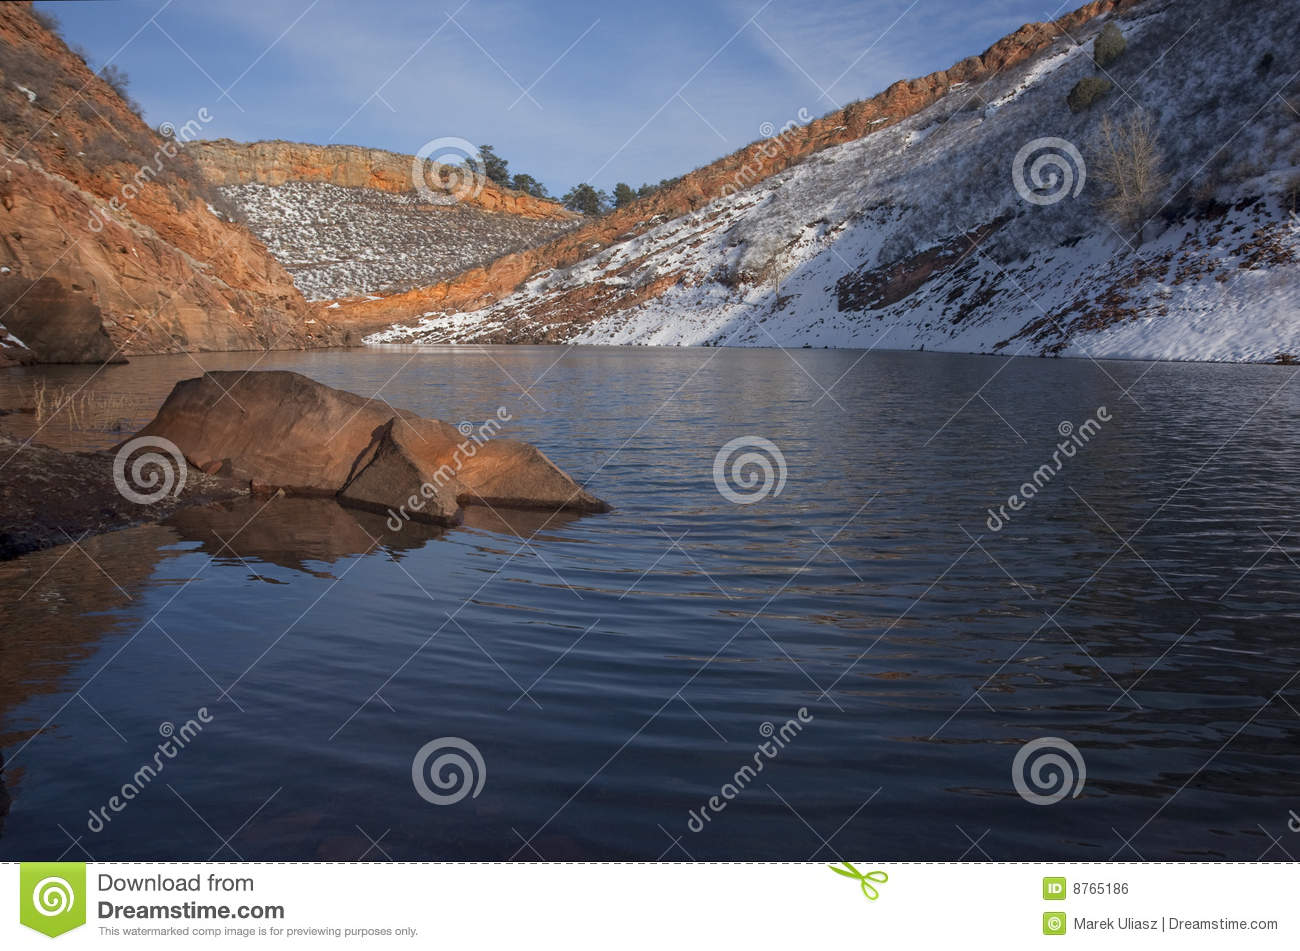 fort collins bike trail map with Royalty Free Stock Image Mountain Lake Sandstone Cliffs Snow Image8765186 on Estes Park Mountain Bike Trails furthermore Beginner Mountain Biking Trails Colorado also 1502 also 1269949 as well 708079312548397058.